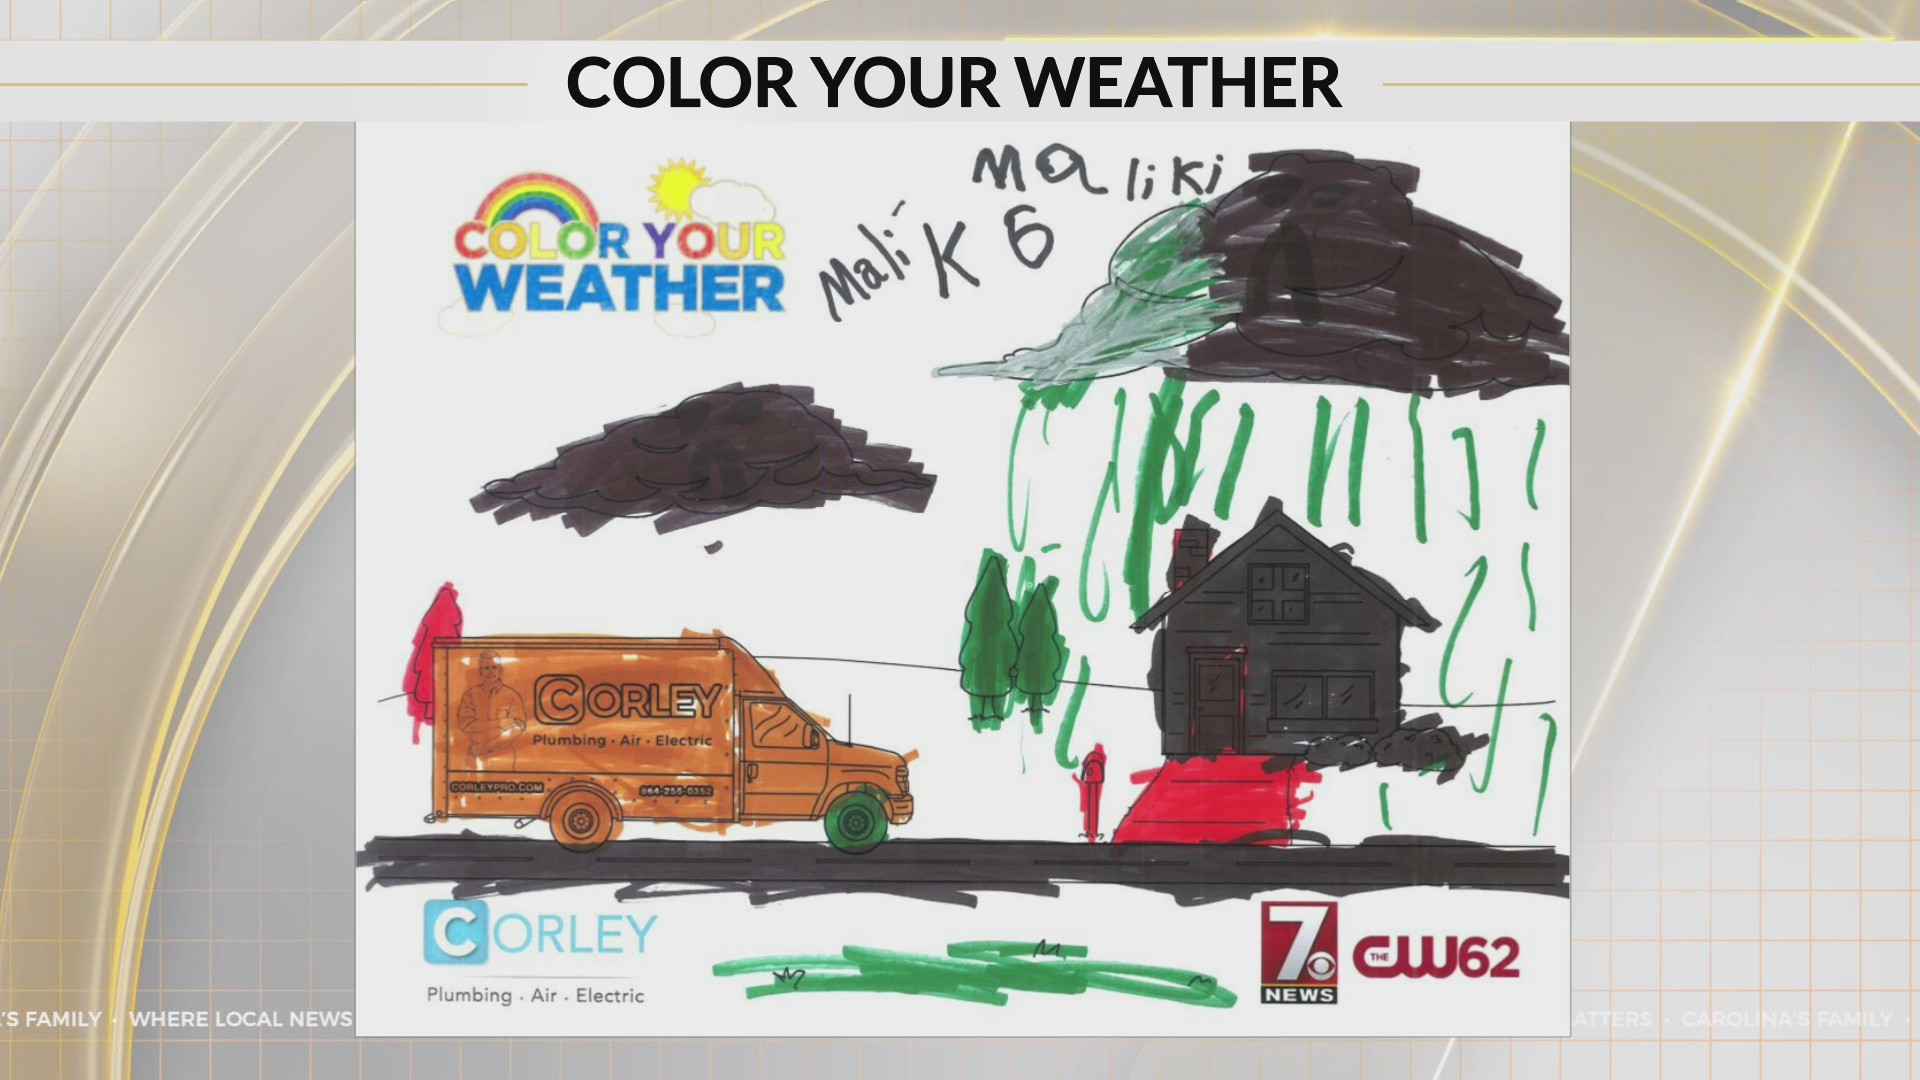 Color Your Weather: Maliki